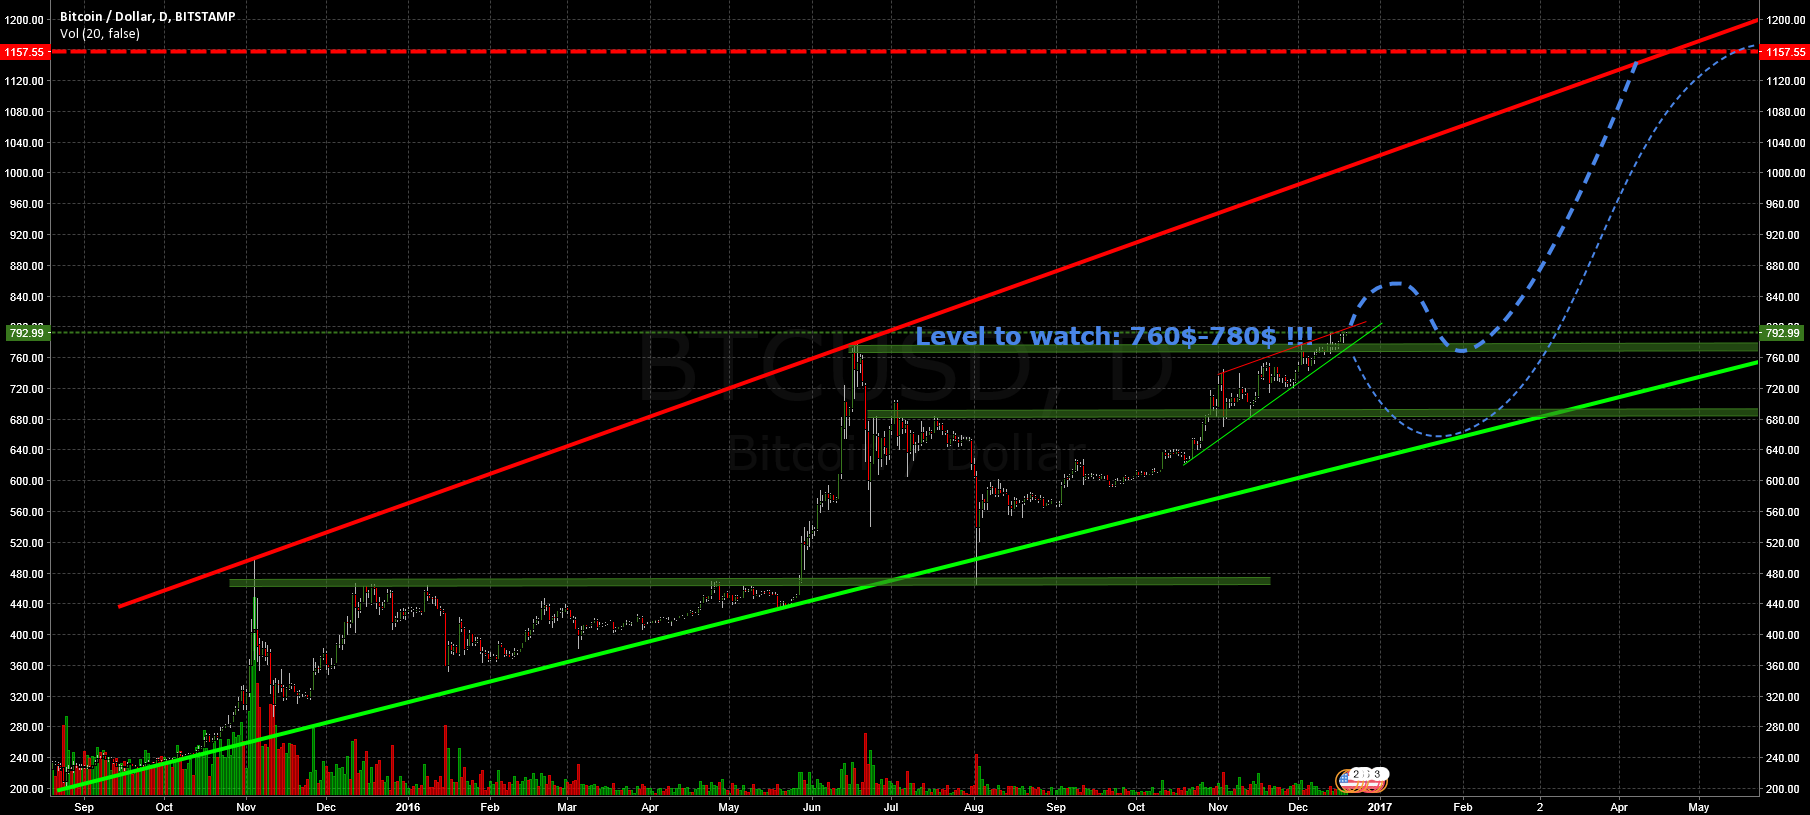 780$ = level to watch!